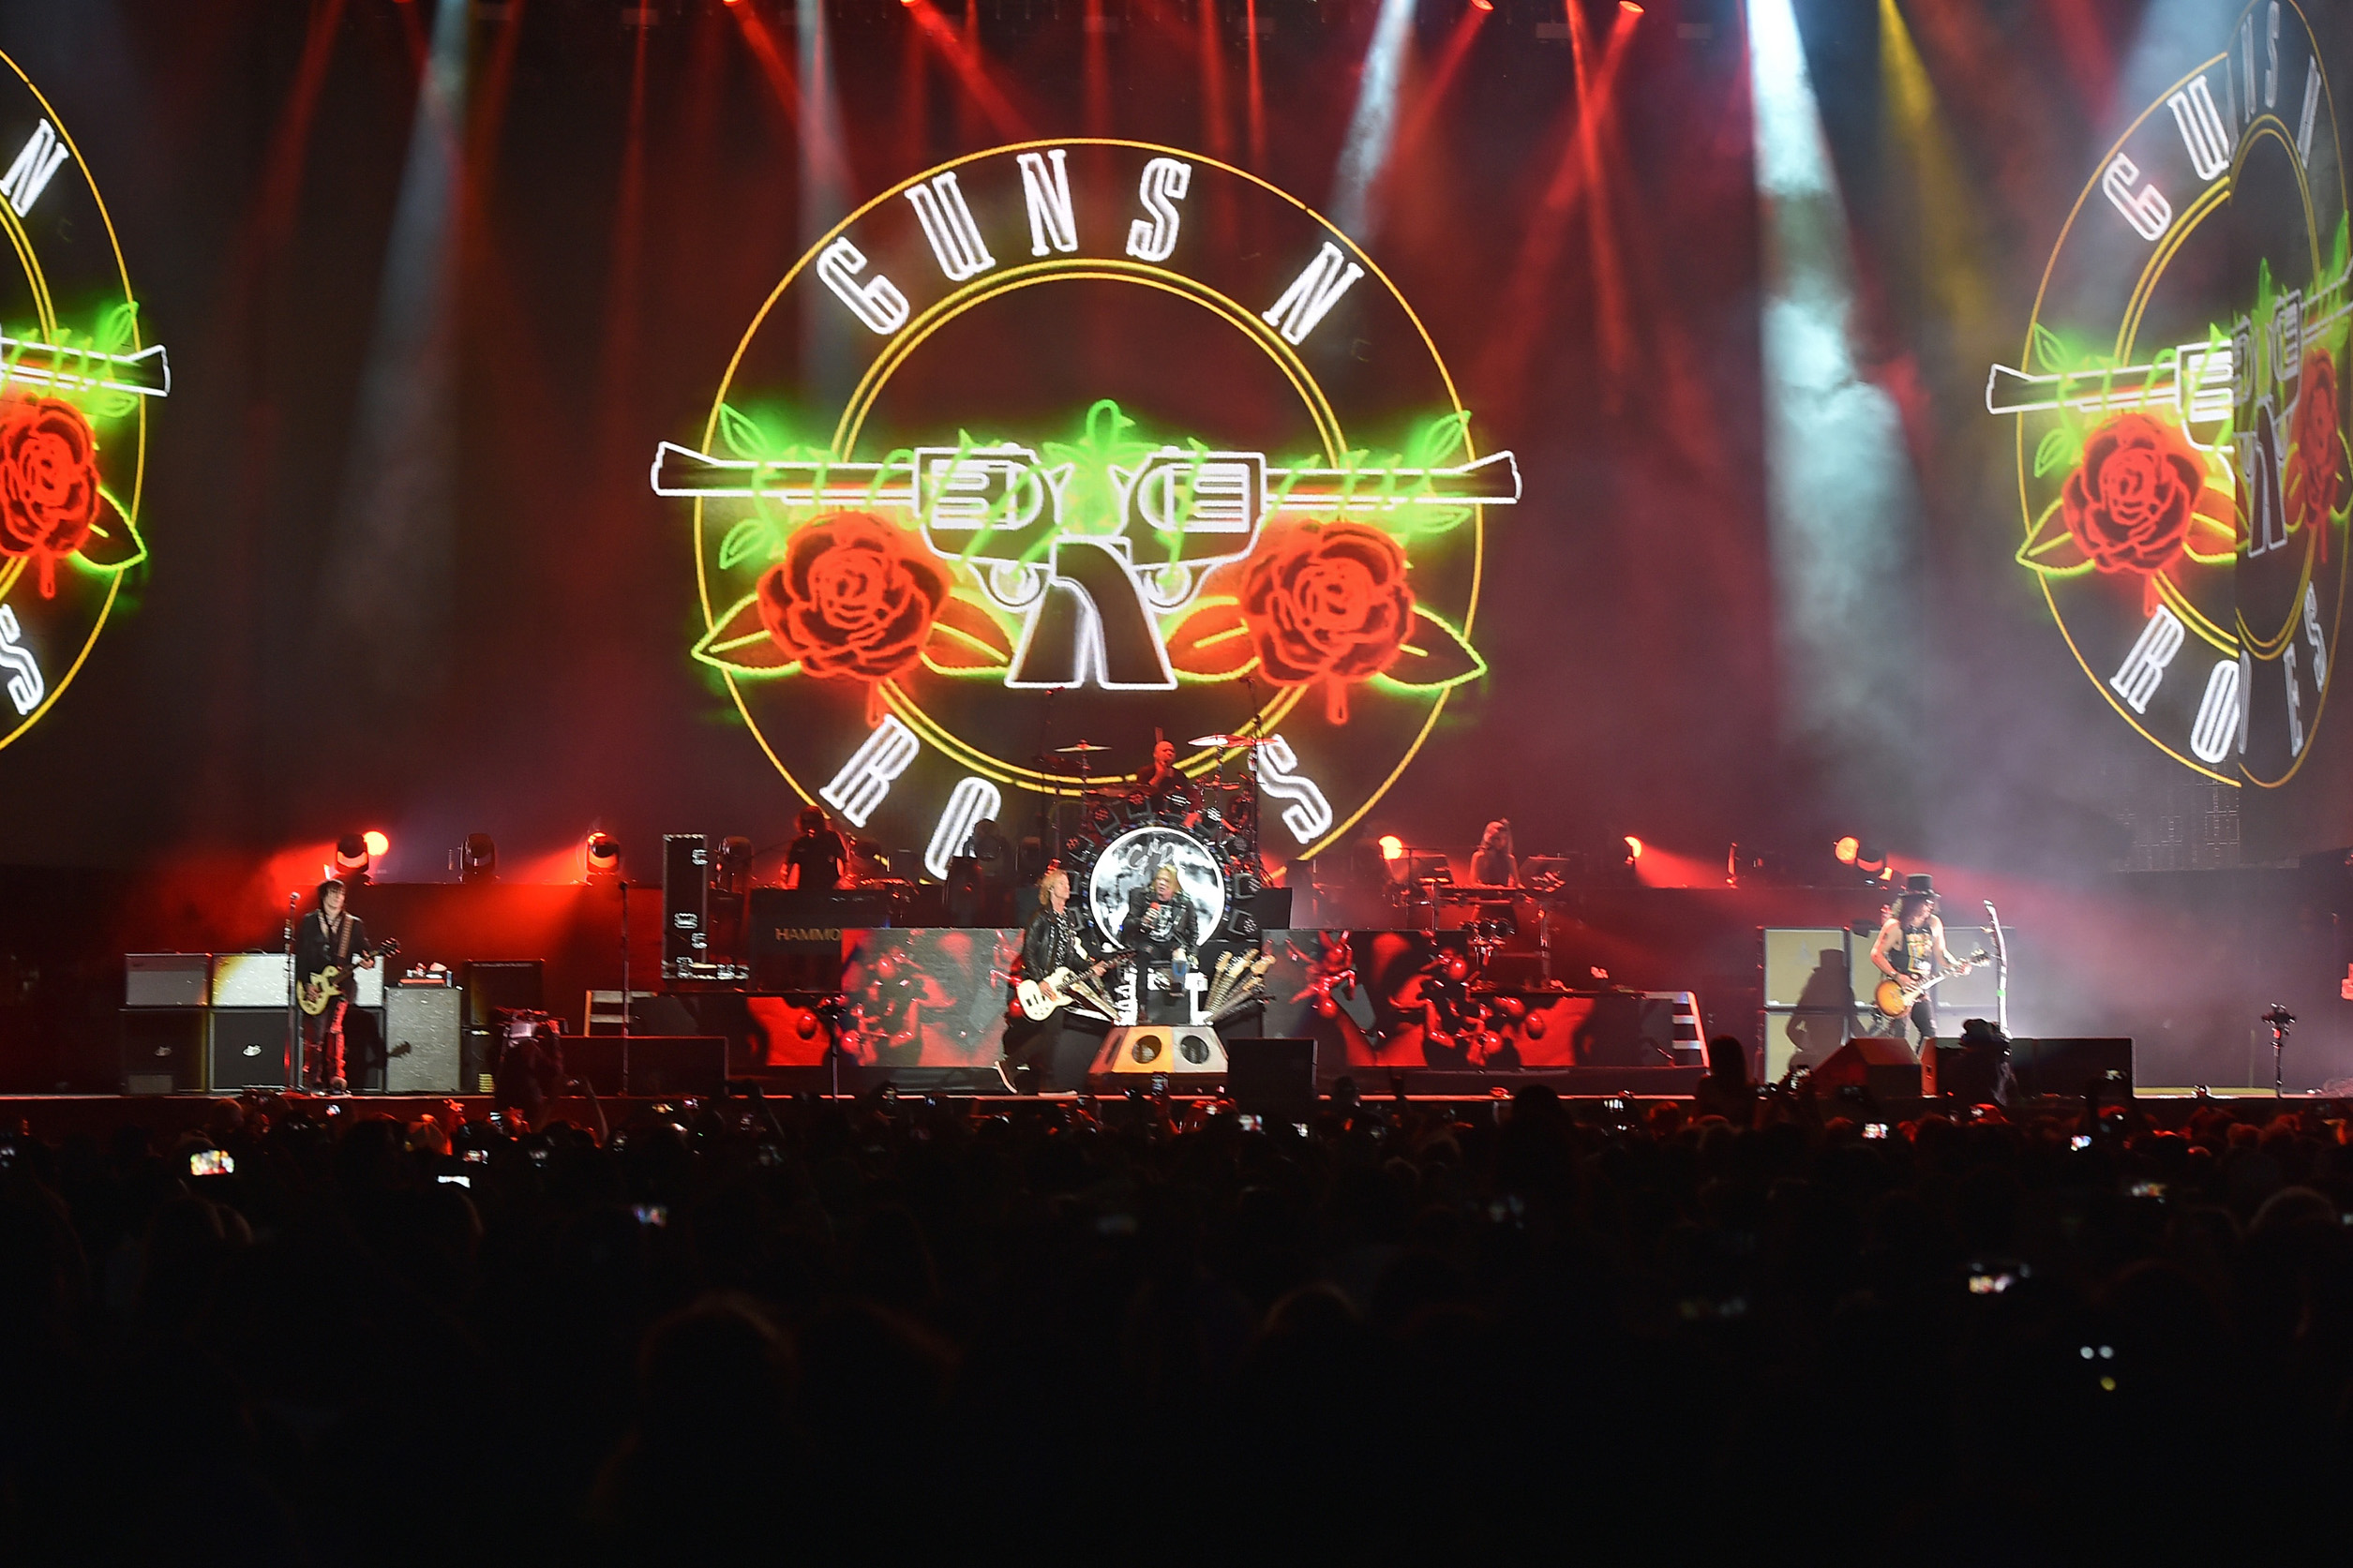 Guns N' Roses perform onstage during day 2 of the 2016 Coachella Valley Music—Arts Festival Weekend at the Empire Polo Club in Indio, California on April 23, 2016.